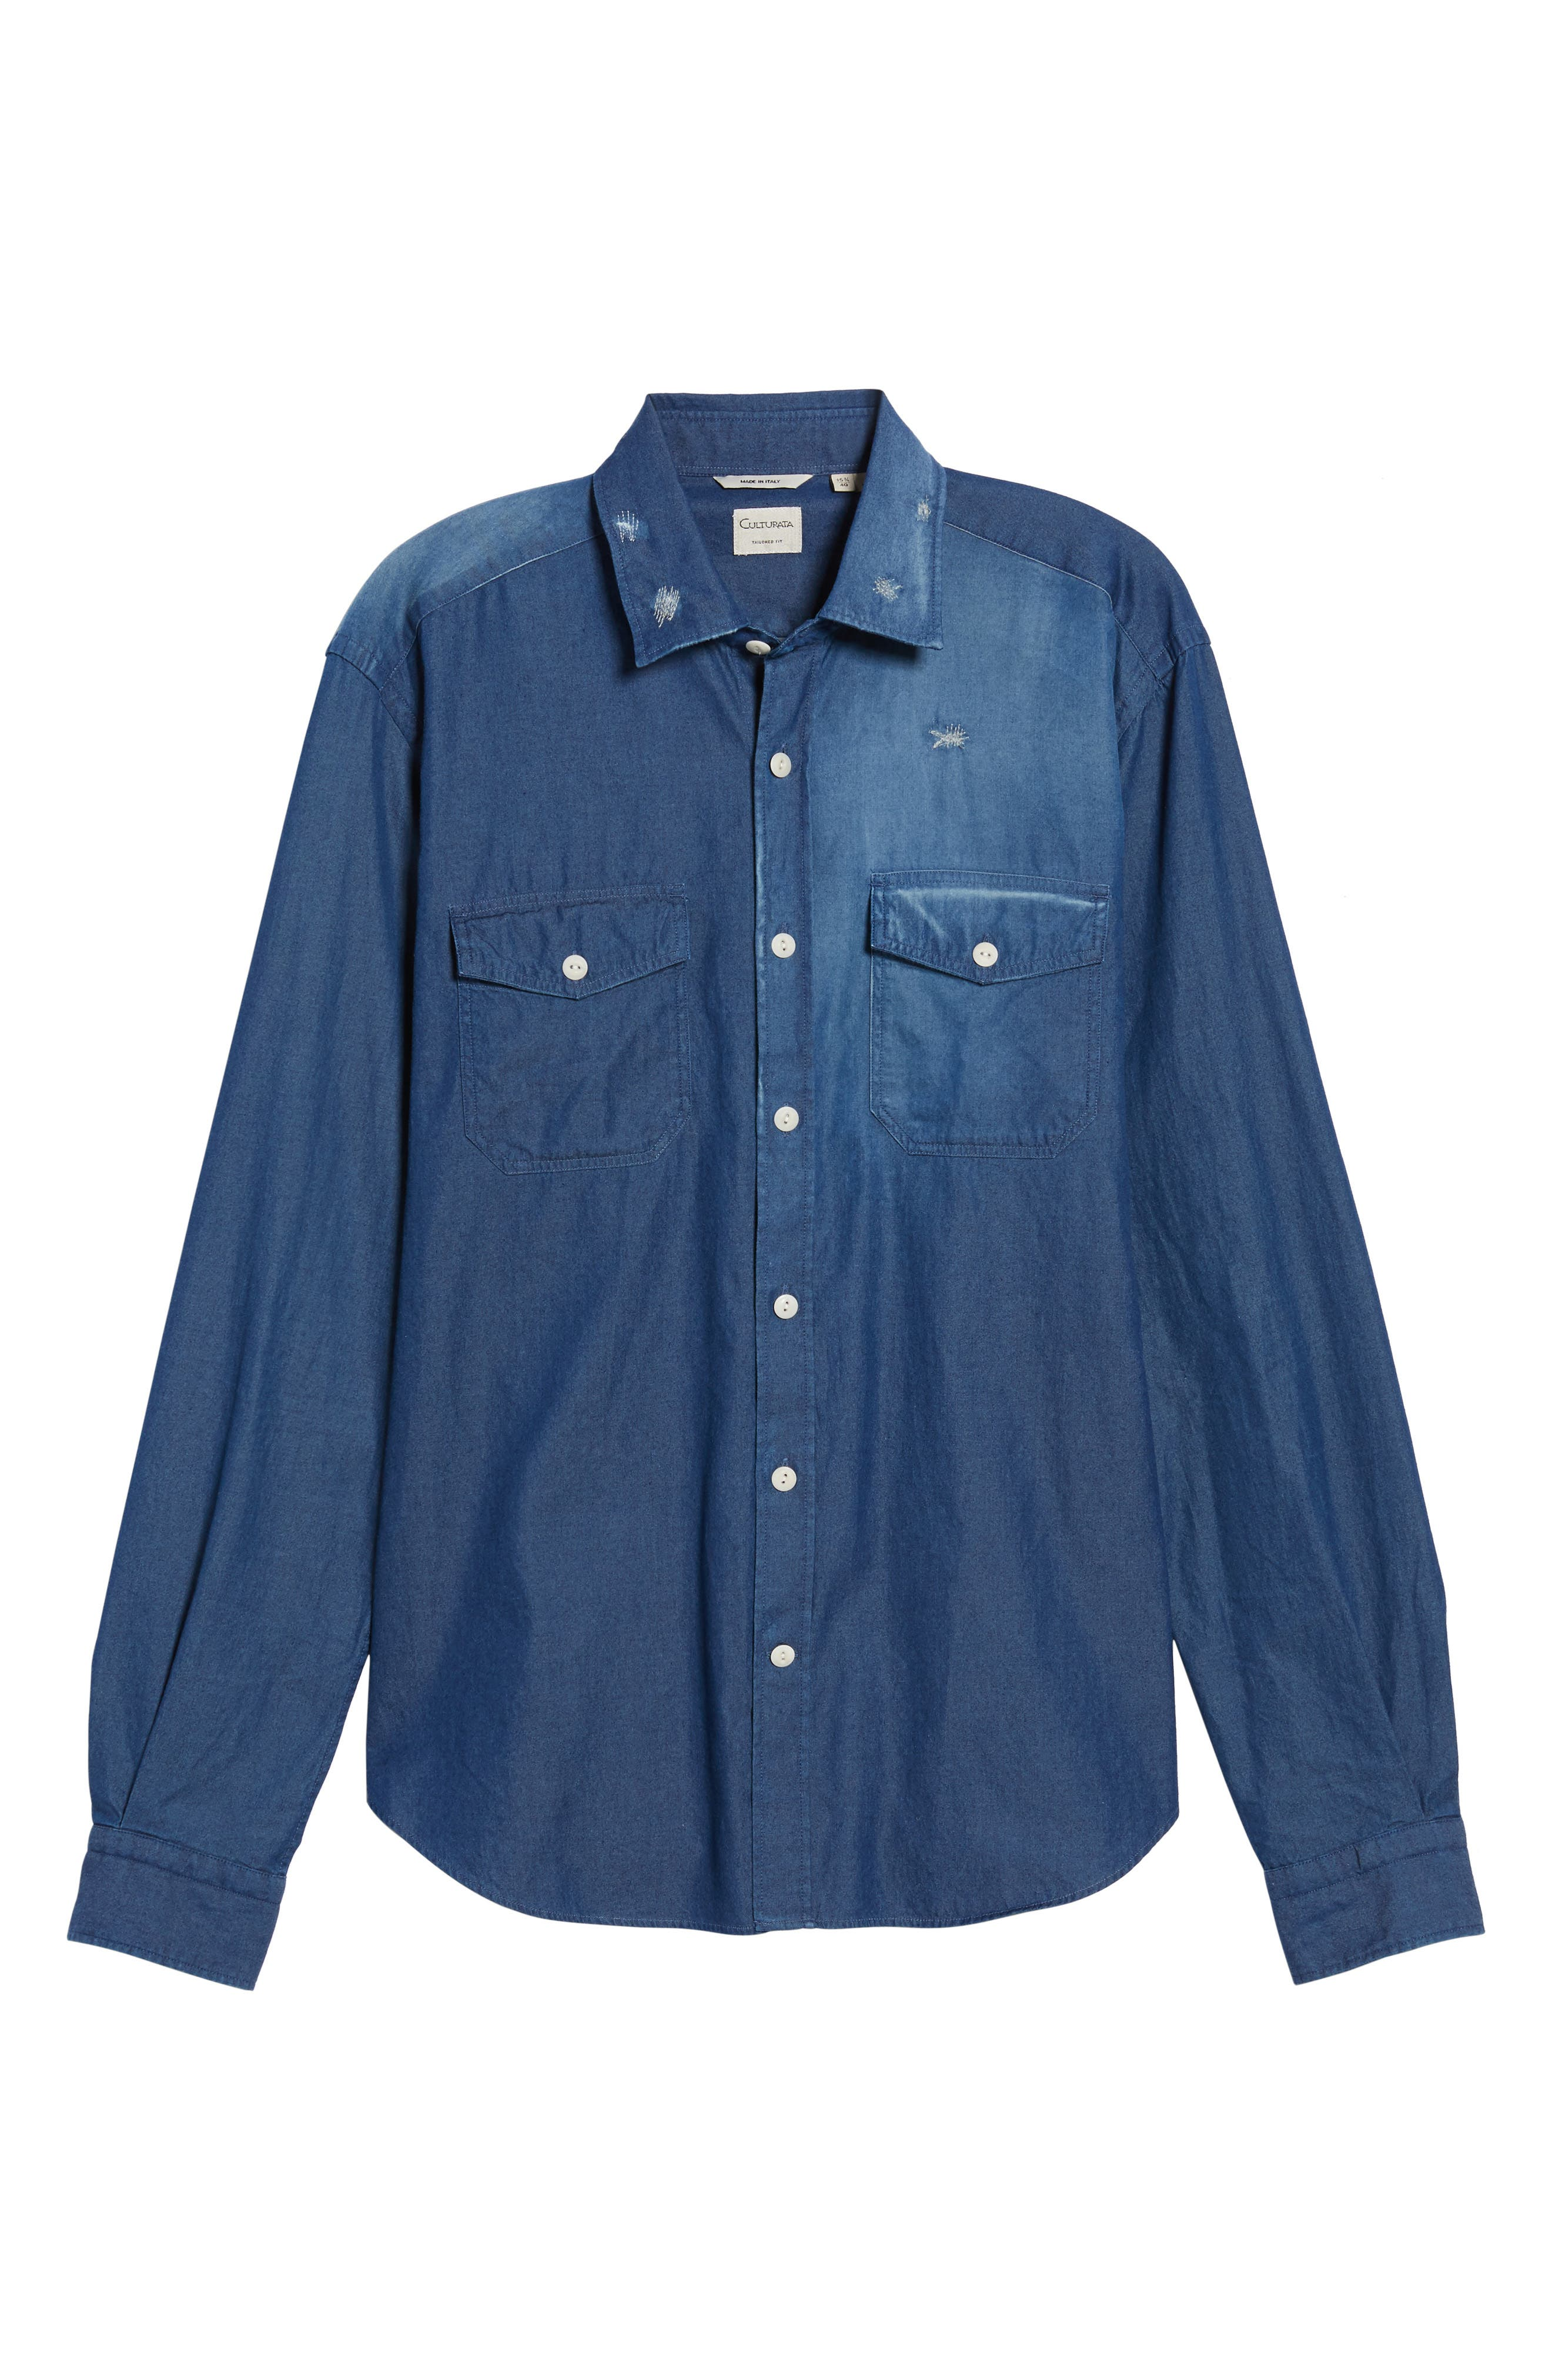 Italian Fade Wash Sport Shirt,                             Alternate thumbnail 6, color,                             400